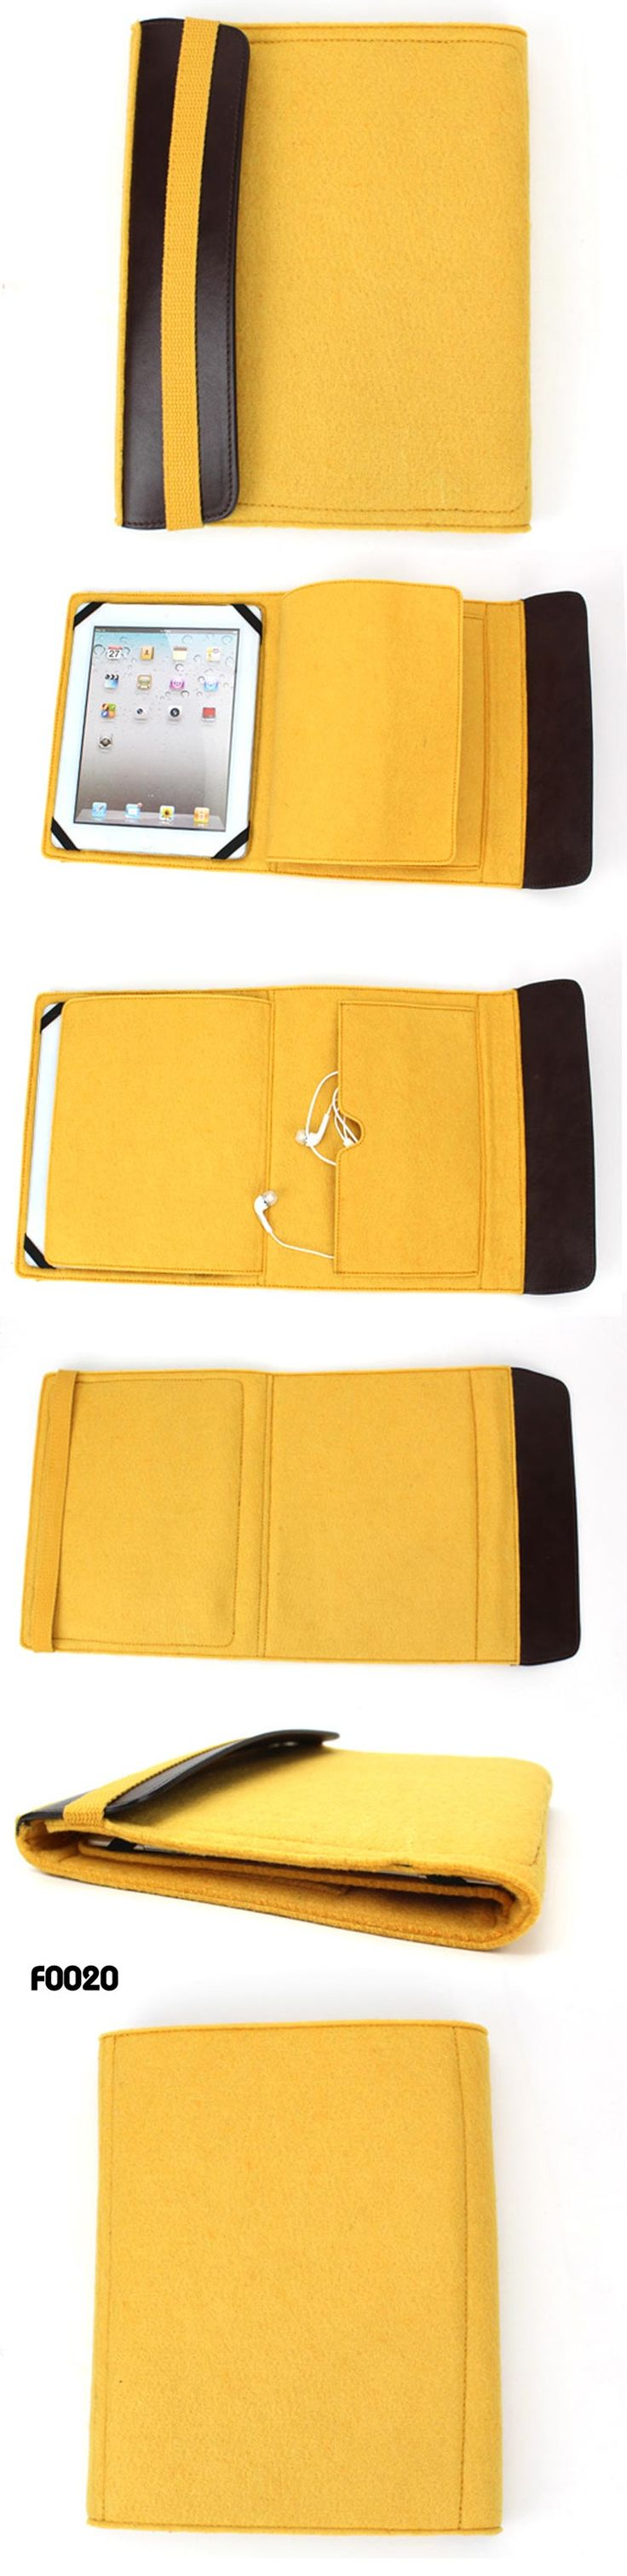 Felt tablet case for ipad  Feature :   eco-friendly Felt  with pu decor,with additonal middle layer to protect your ipad well  with inside pocket for you tech accessory  product size: 22*27cm www.ideagroupigm.com